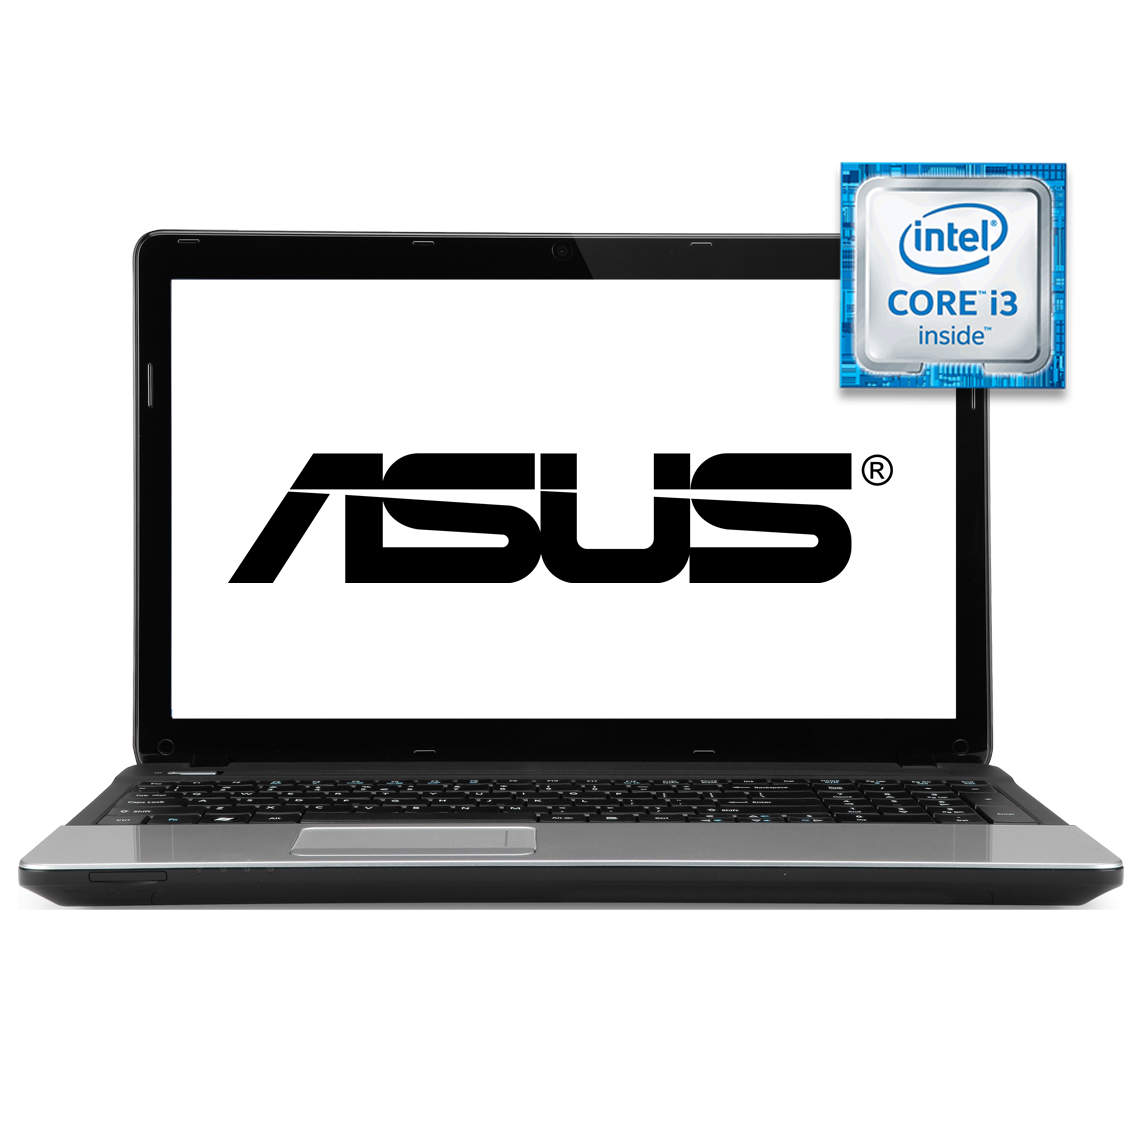 ASUS - 15.6 inch Core i3 2nd Gen